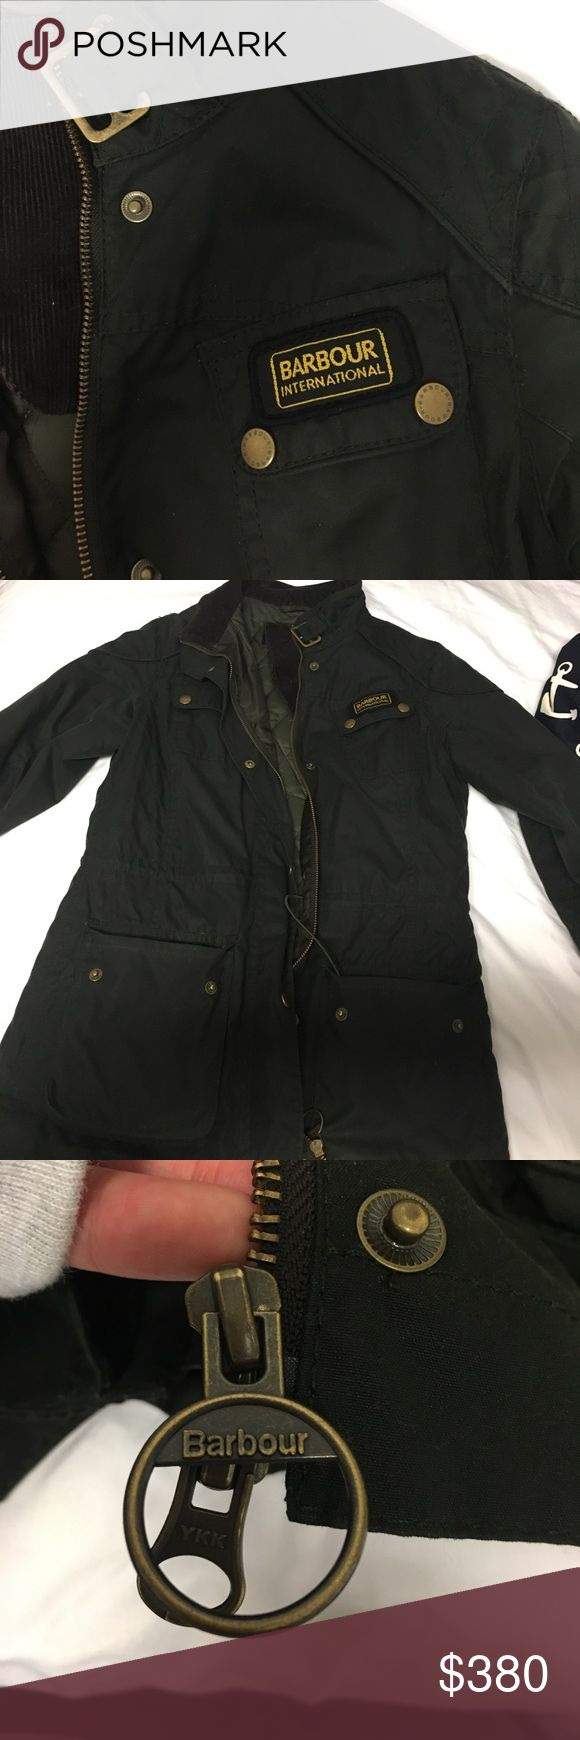 AUTHENTIC BARBOUR INTERNATIONAL I'm selling Barbour international jacket at a really good price!!!! Barbour is super expensive but I'm down for good negotiations :) Barbour Jackets & Coats